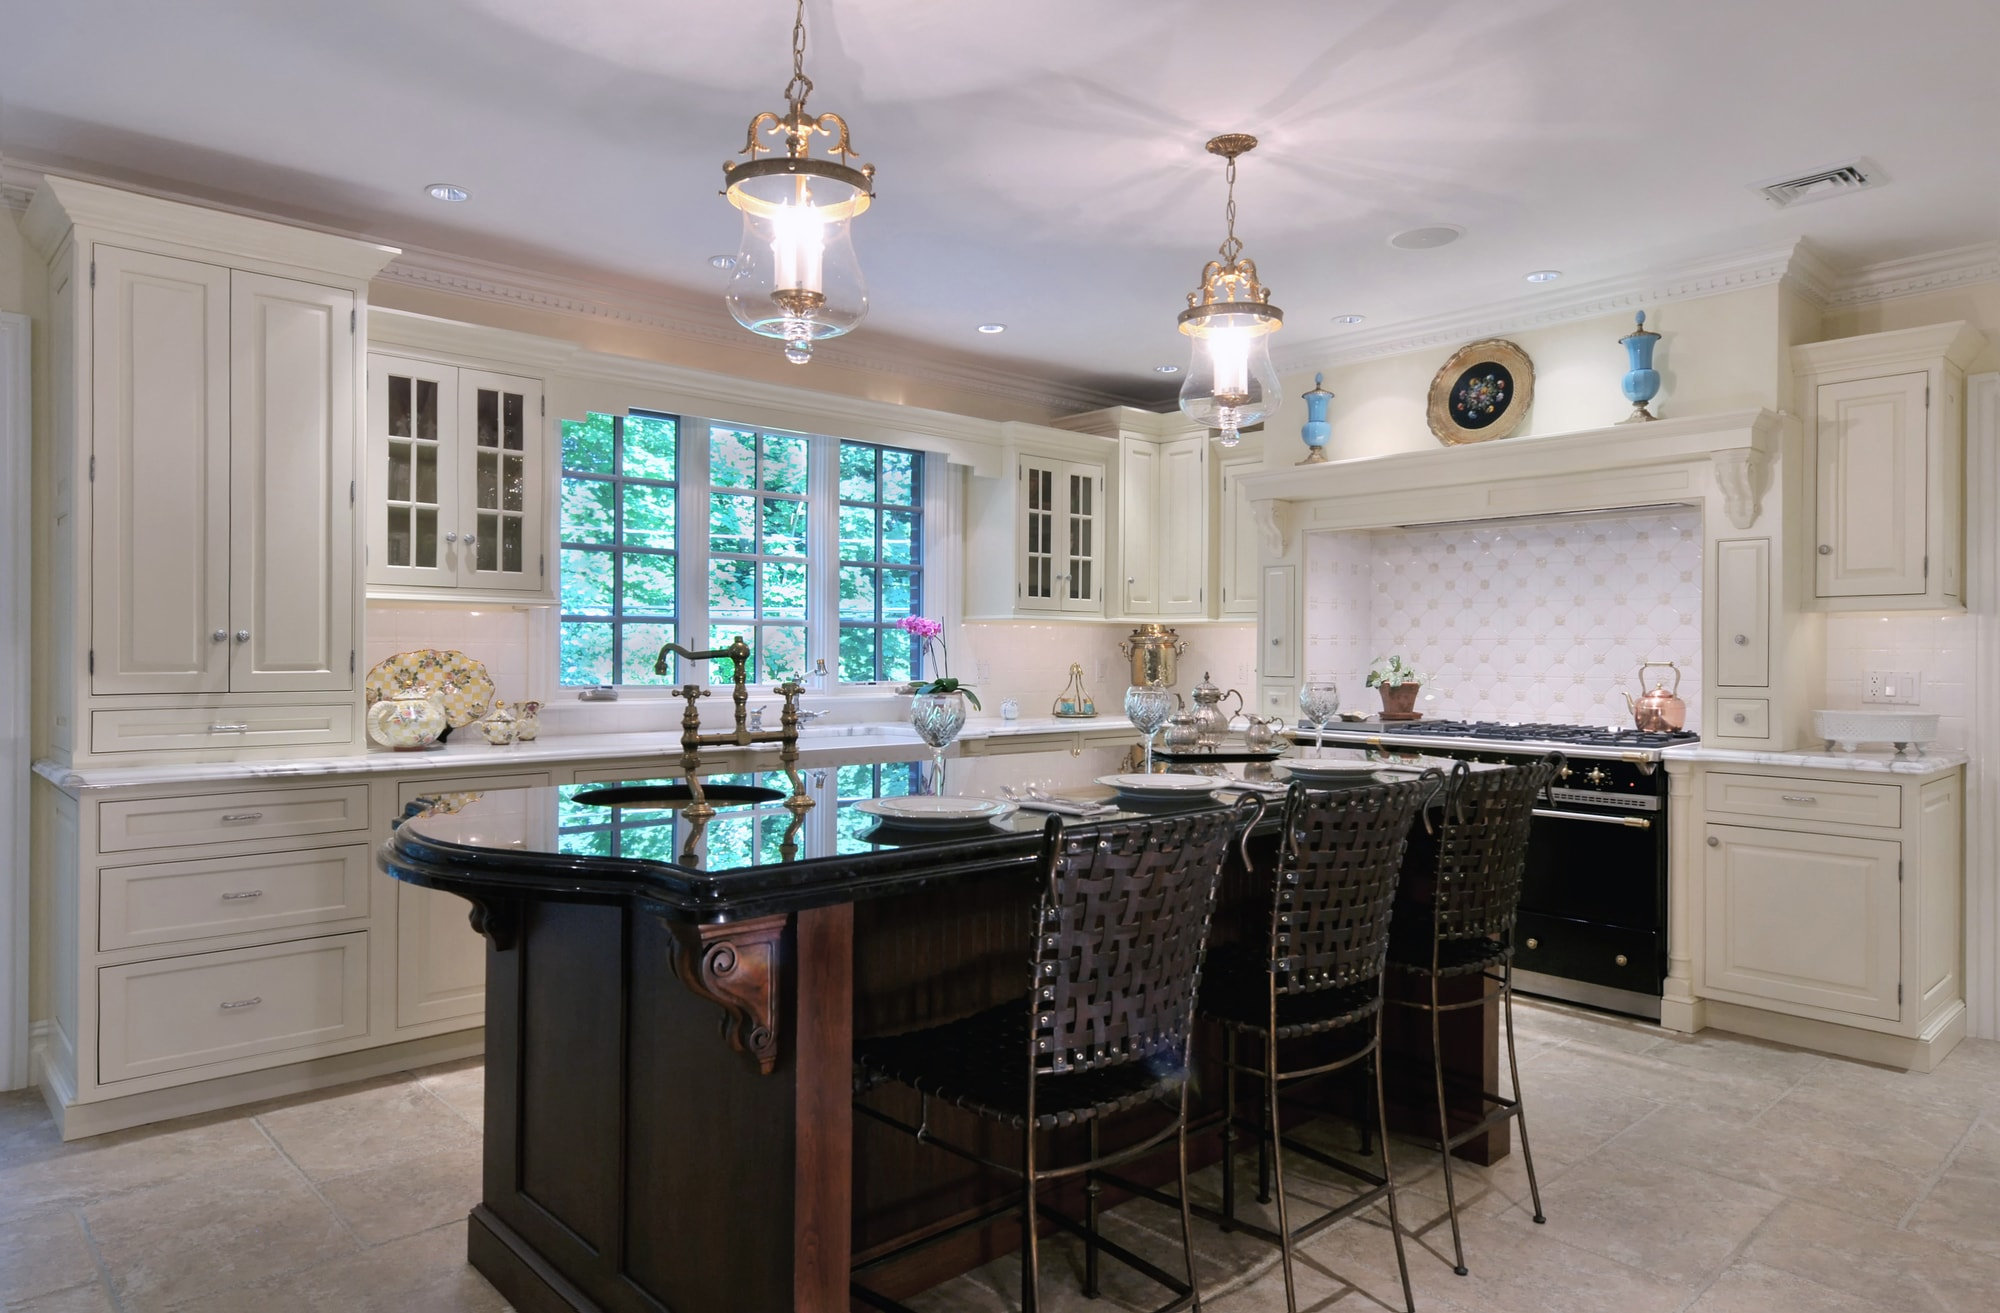 Traditional style kitchen with white cabinets and white tiled floors